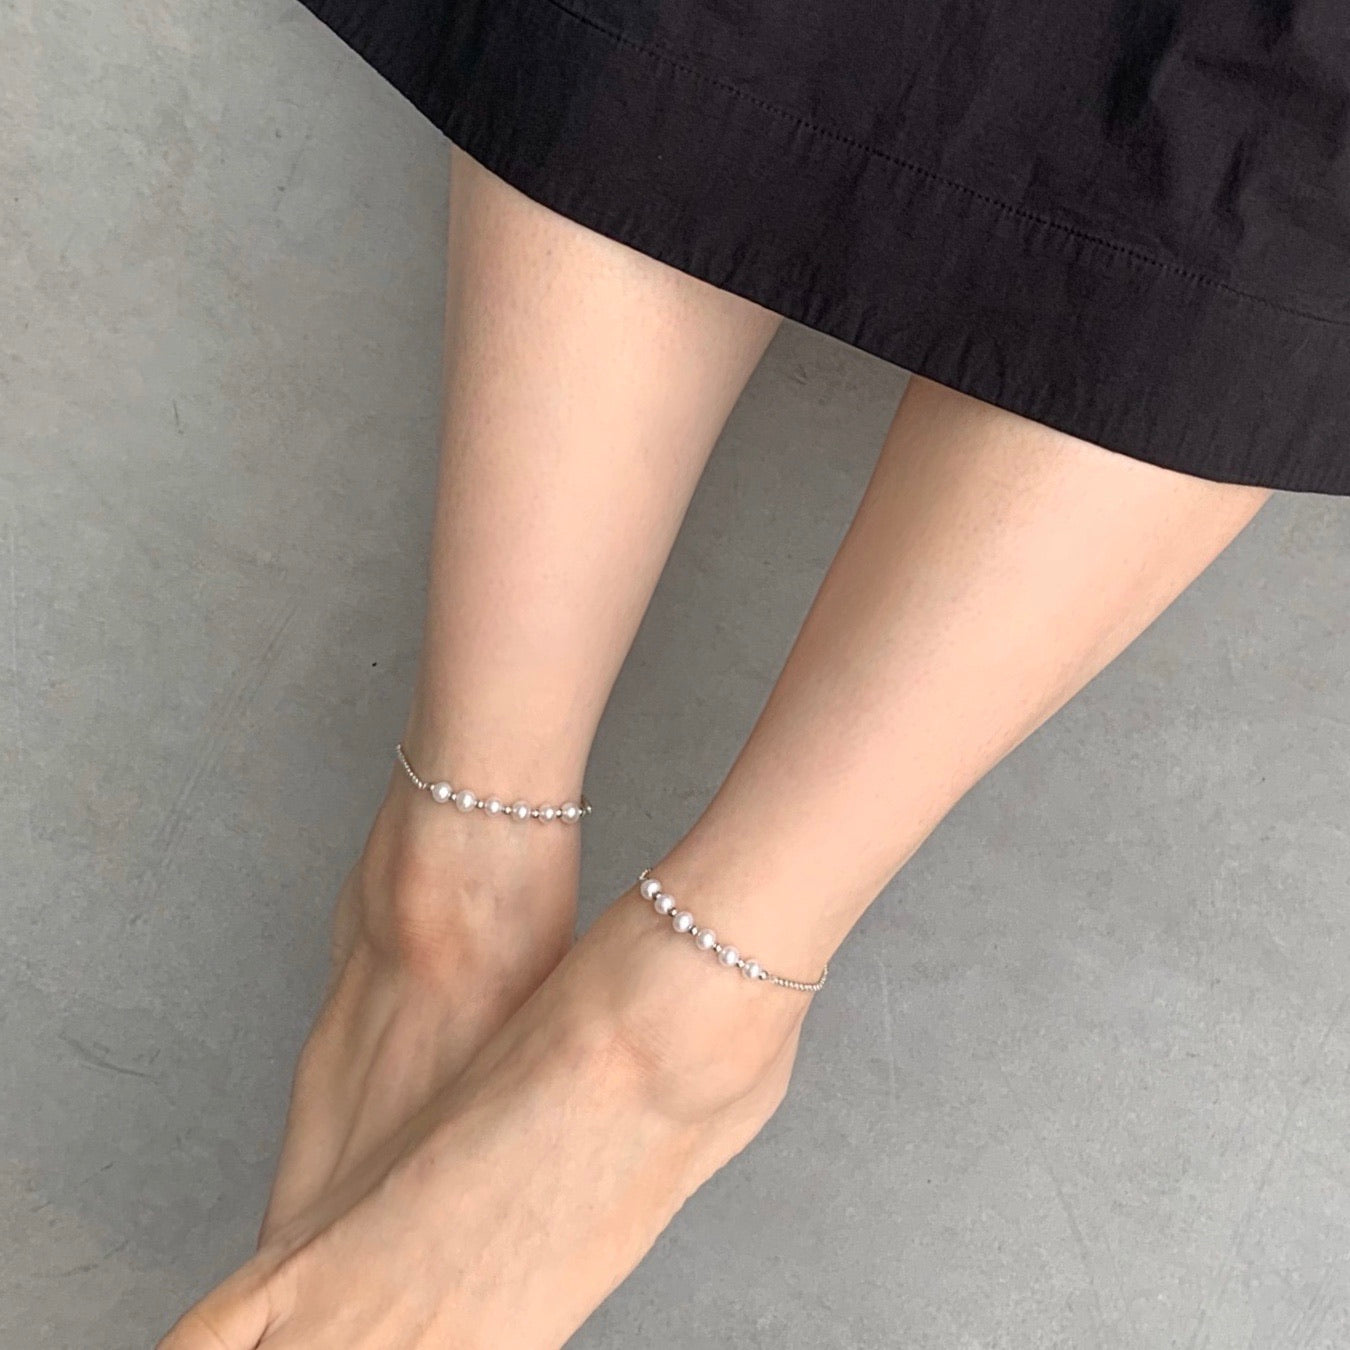 Freshwater Pearl Workshop Anklet 自訂顏色珍珠腳鏈 (訂做) - Woment Designer Jewelry